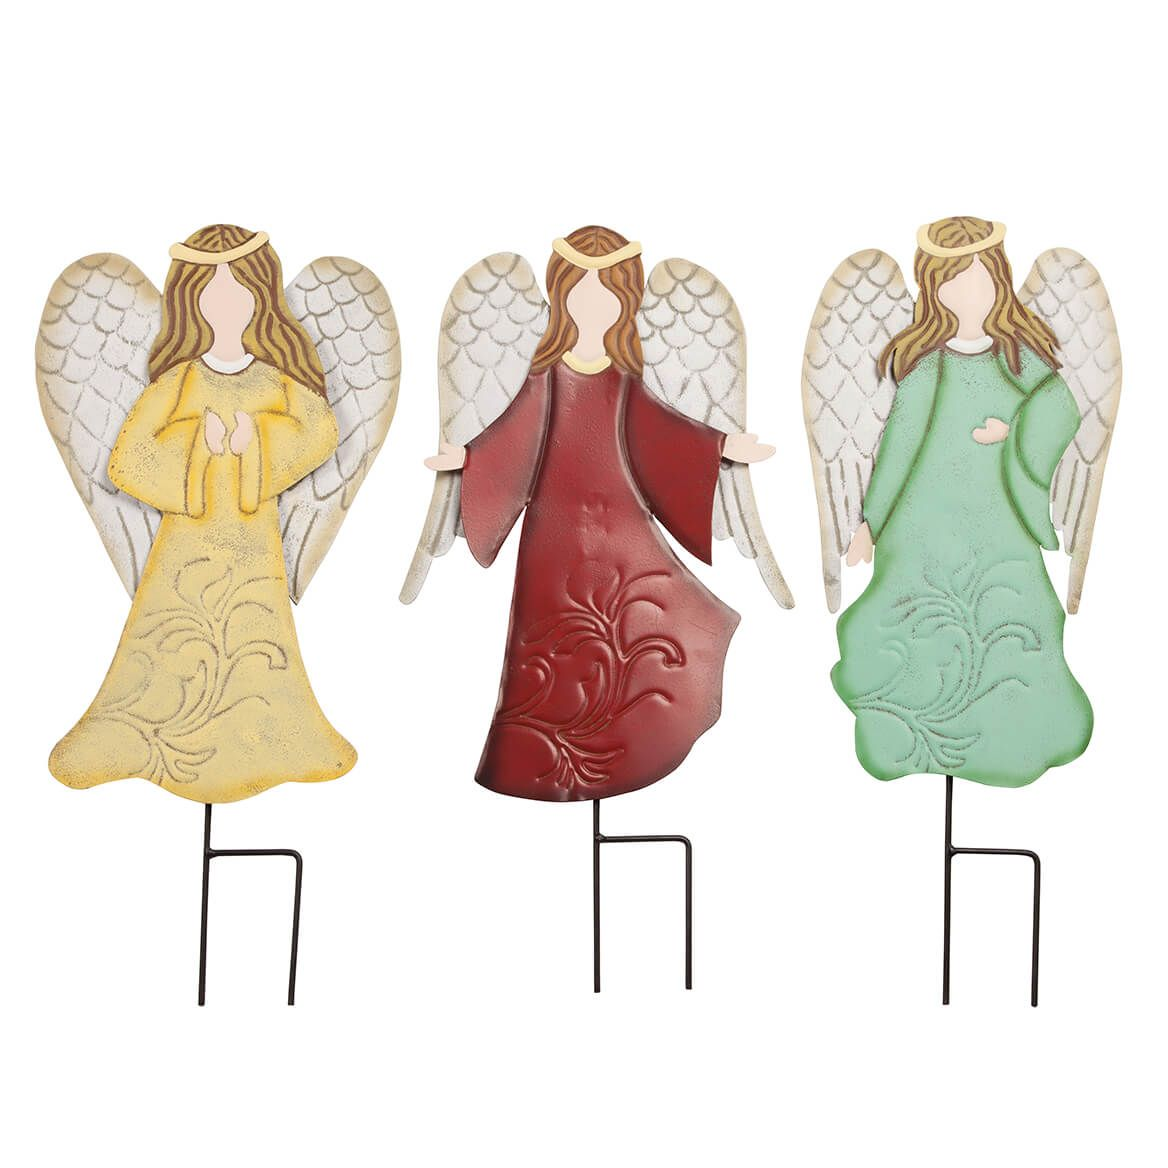 Metal Angel Stakes by Fox River™ Creations, Set of 3-364680